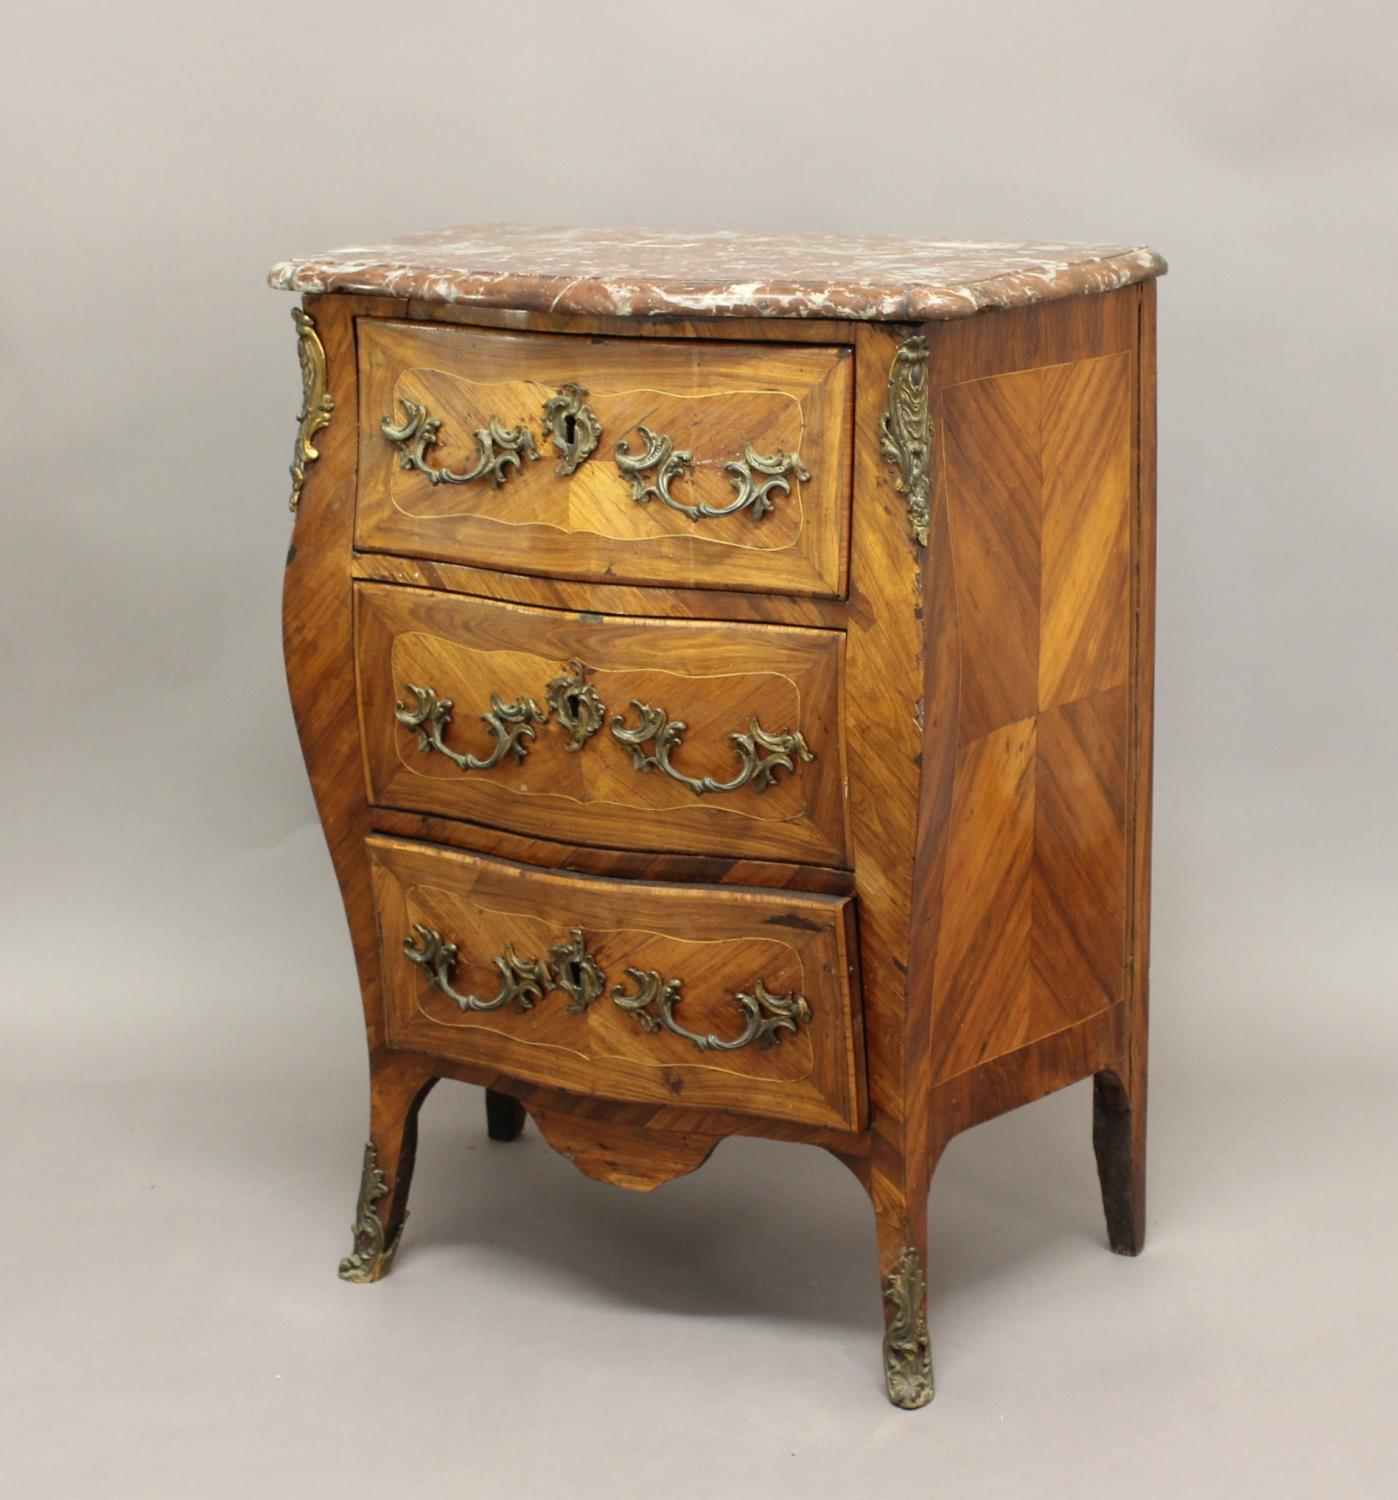 A LOUIS XV STYLE BOMBÉ MARBLE-TOPPED COMMODE, the pink marble top above three drawers with scrolling